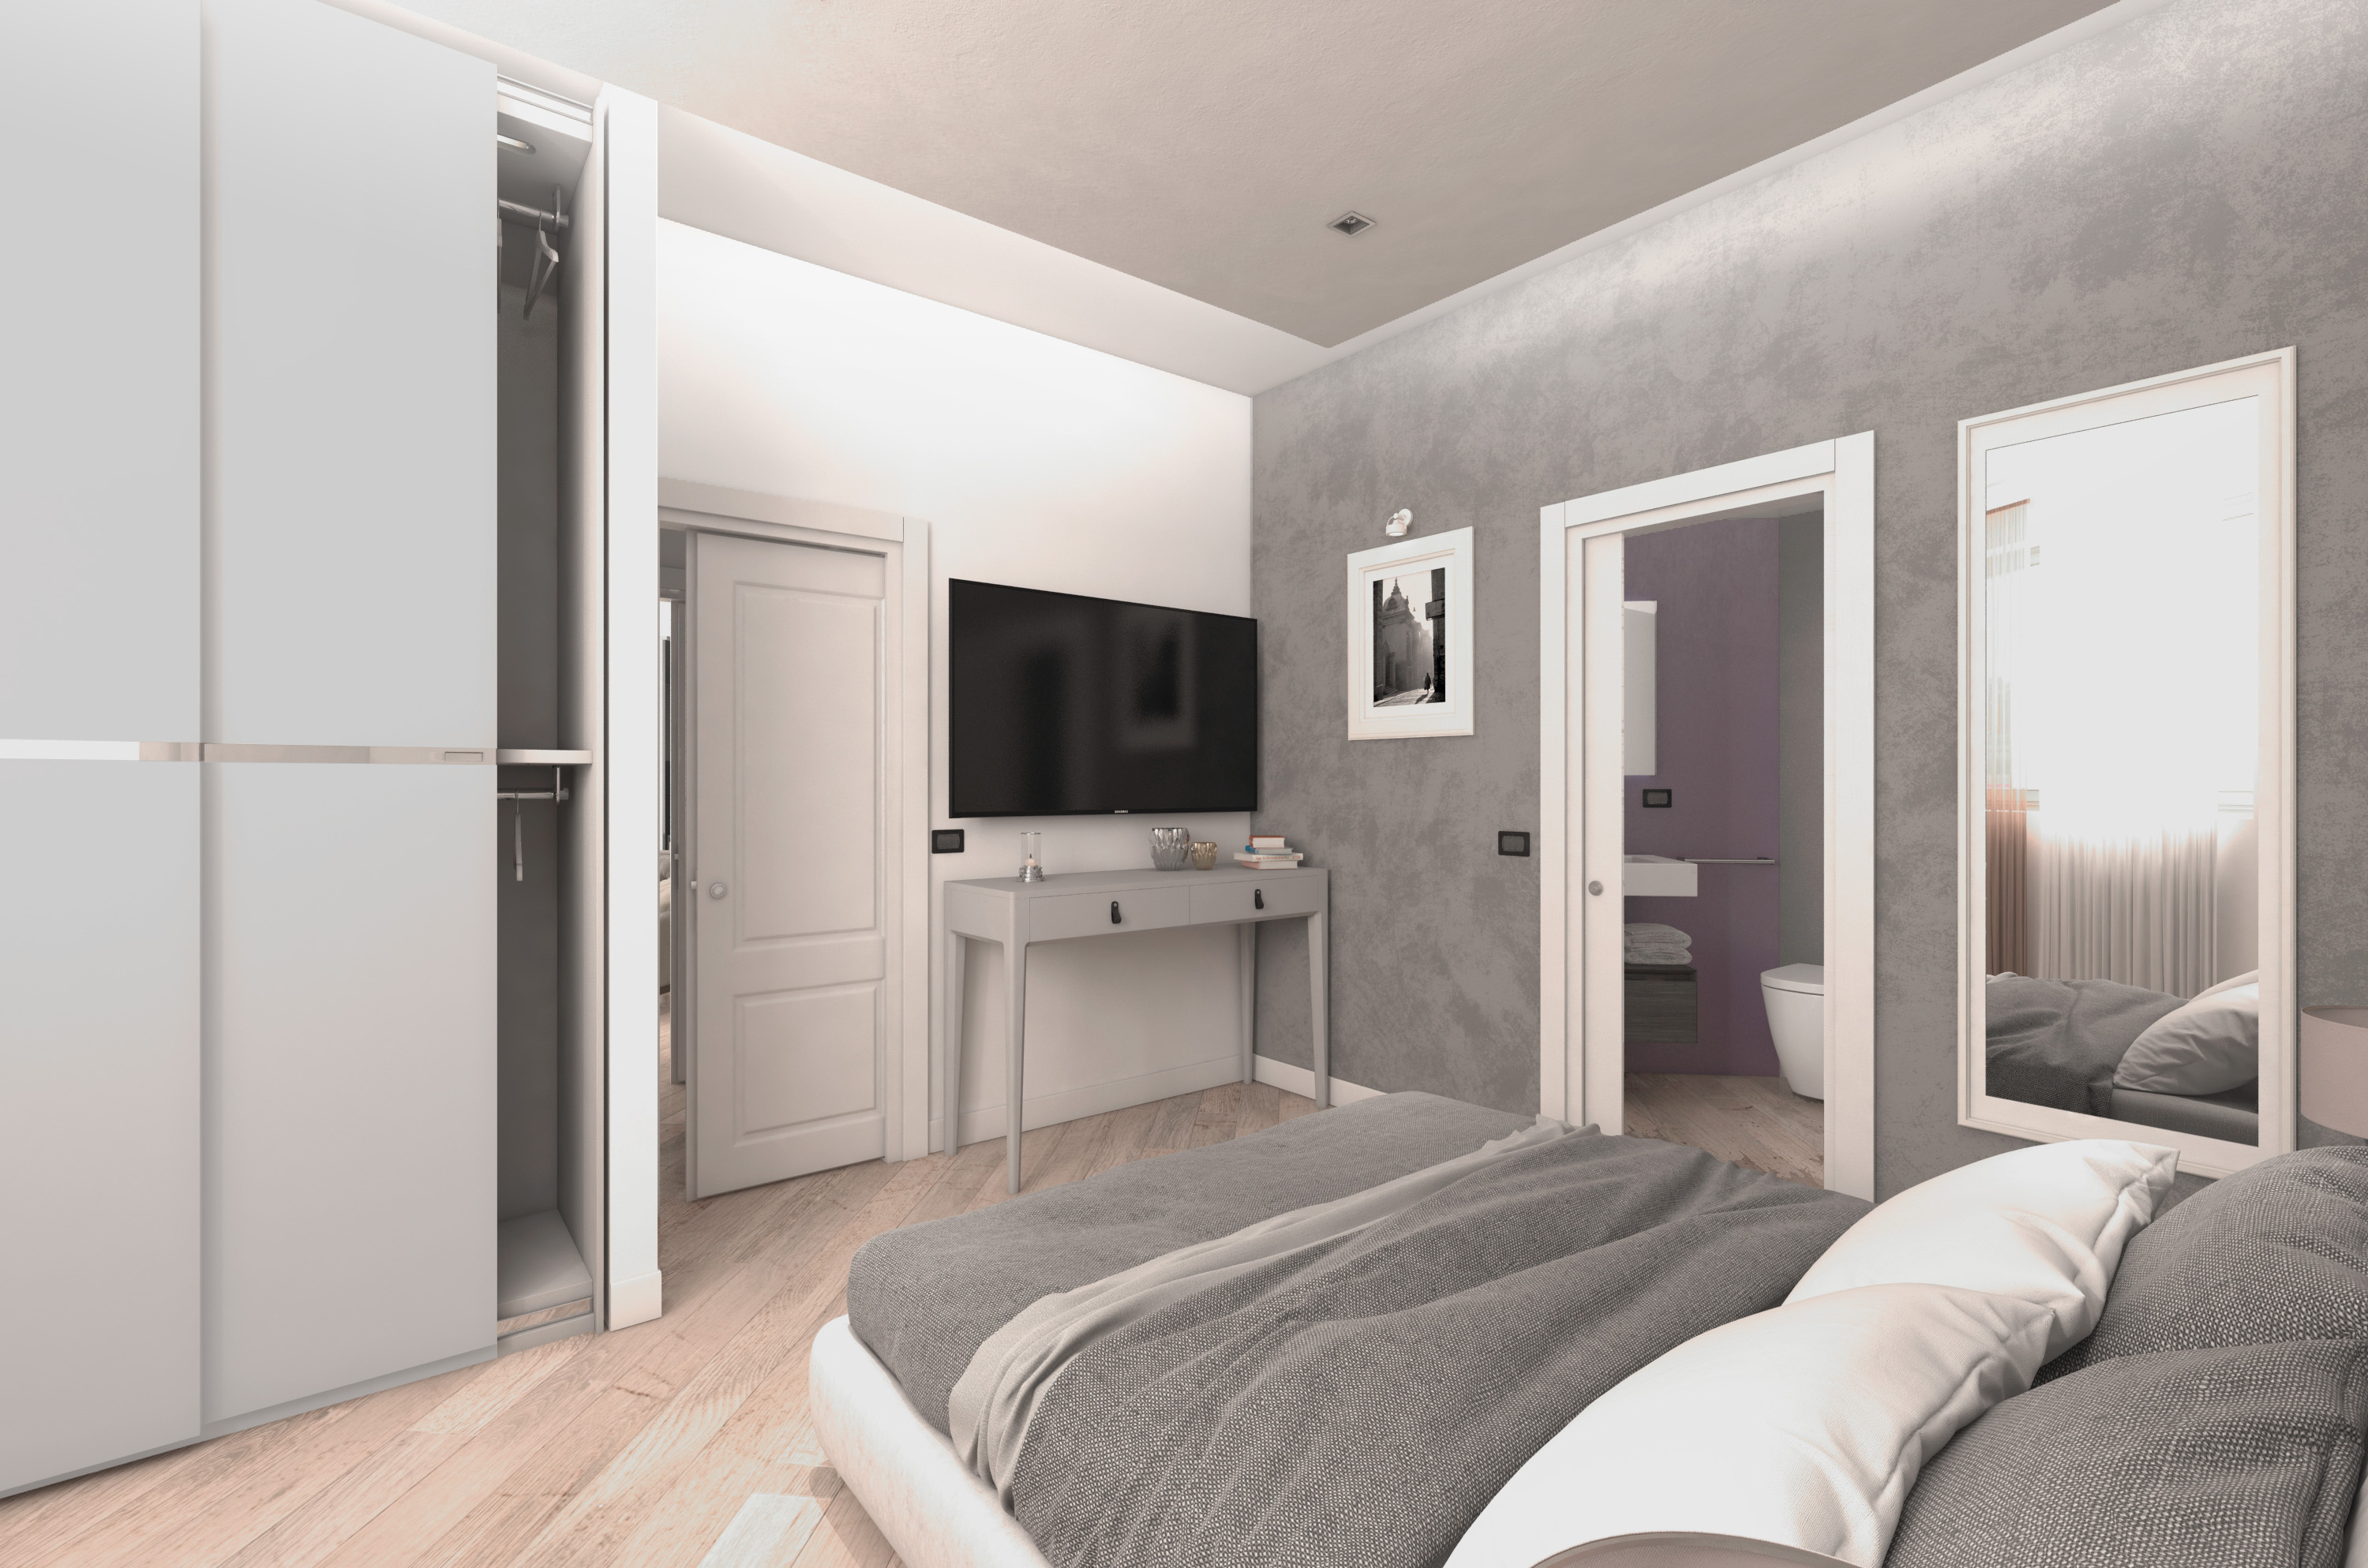 Home staging virtuale roma zona vaticano virgo design render - Home staging bagno ...